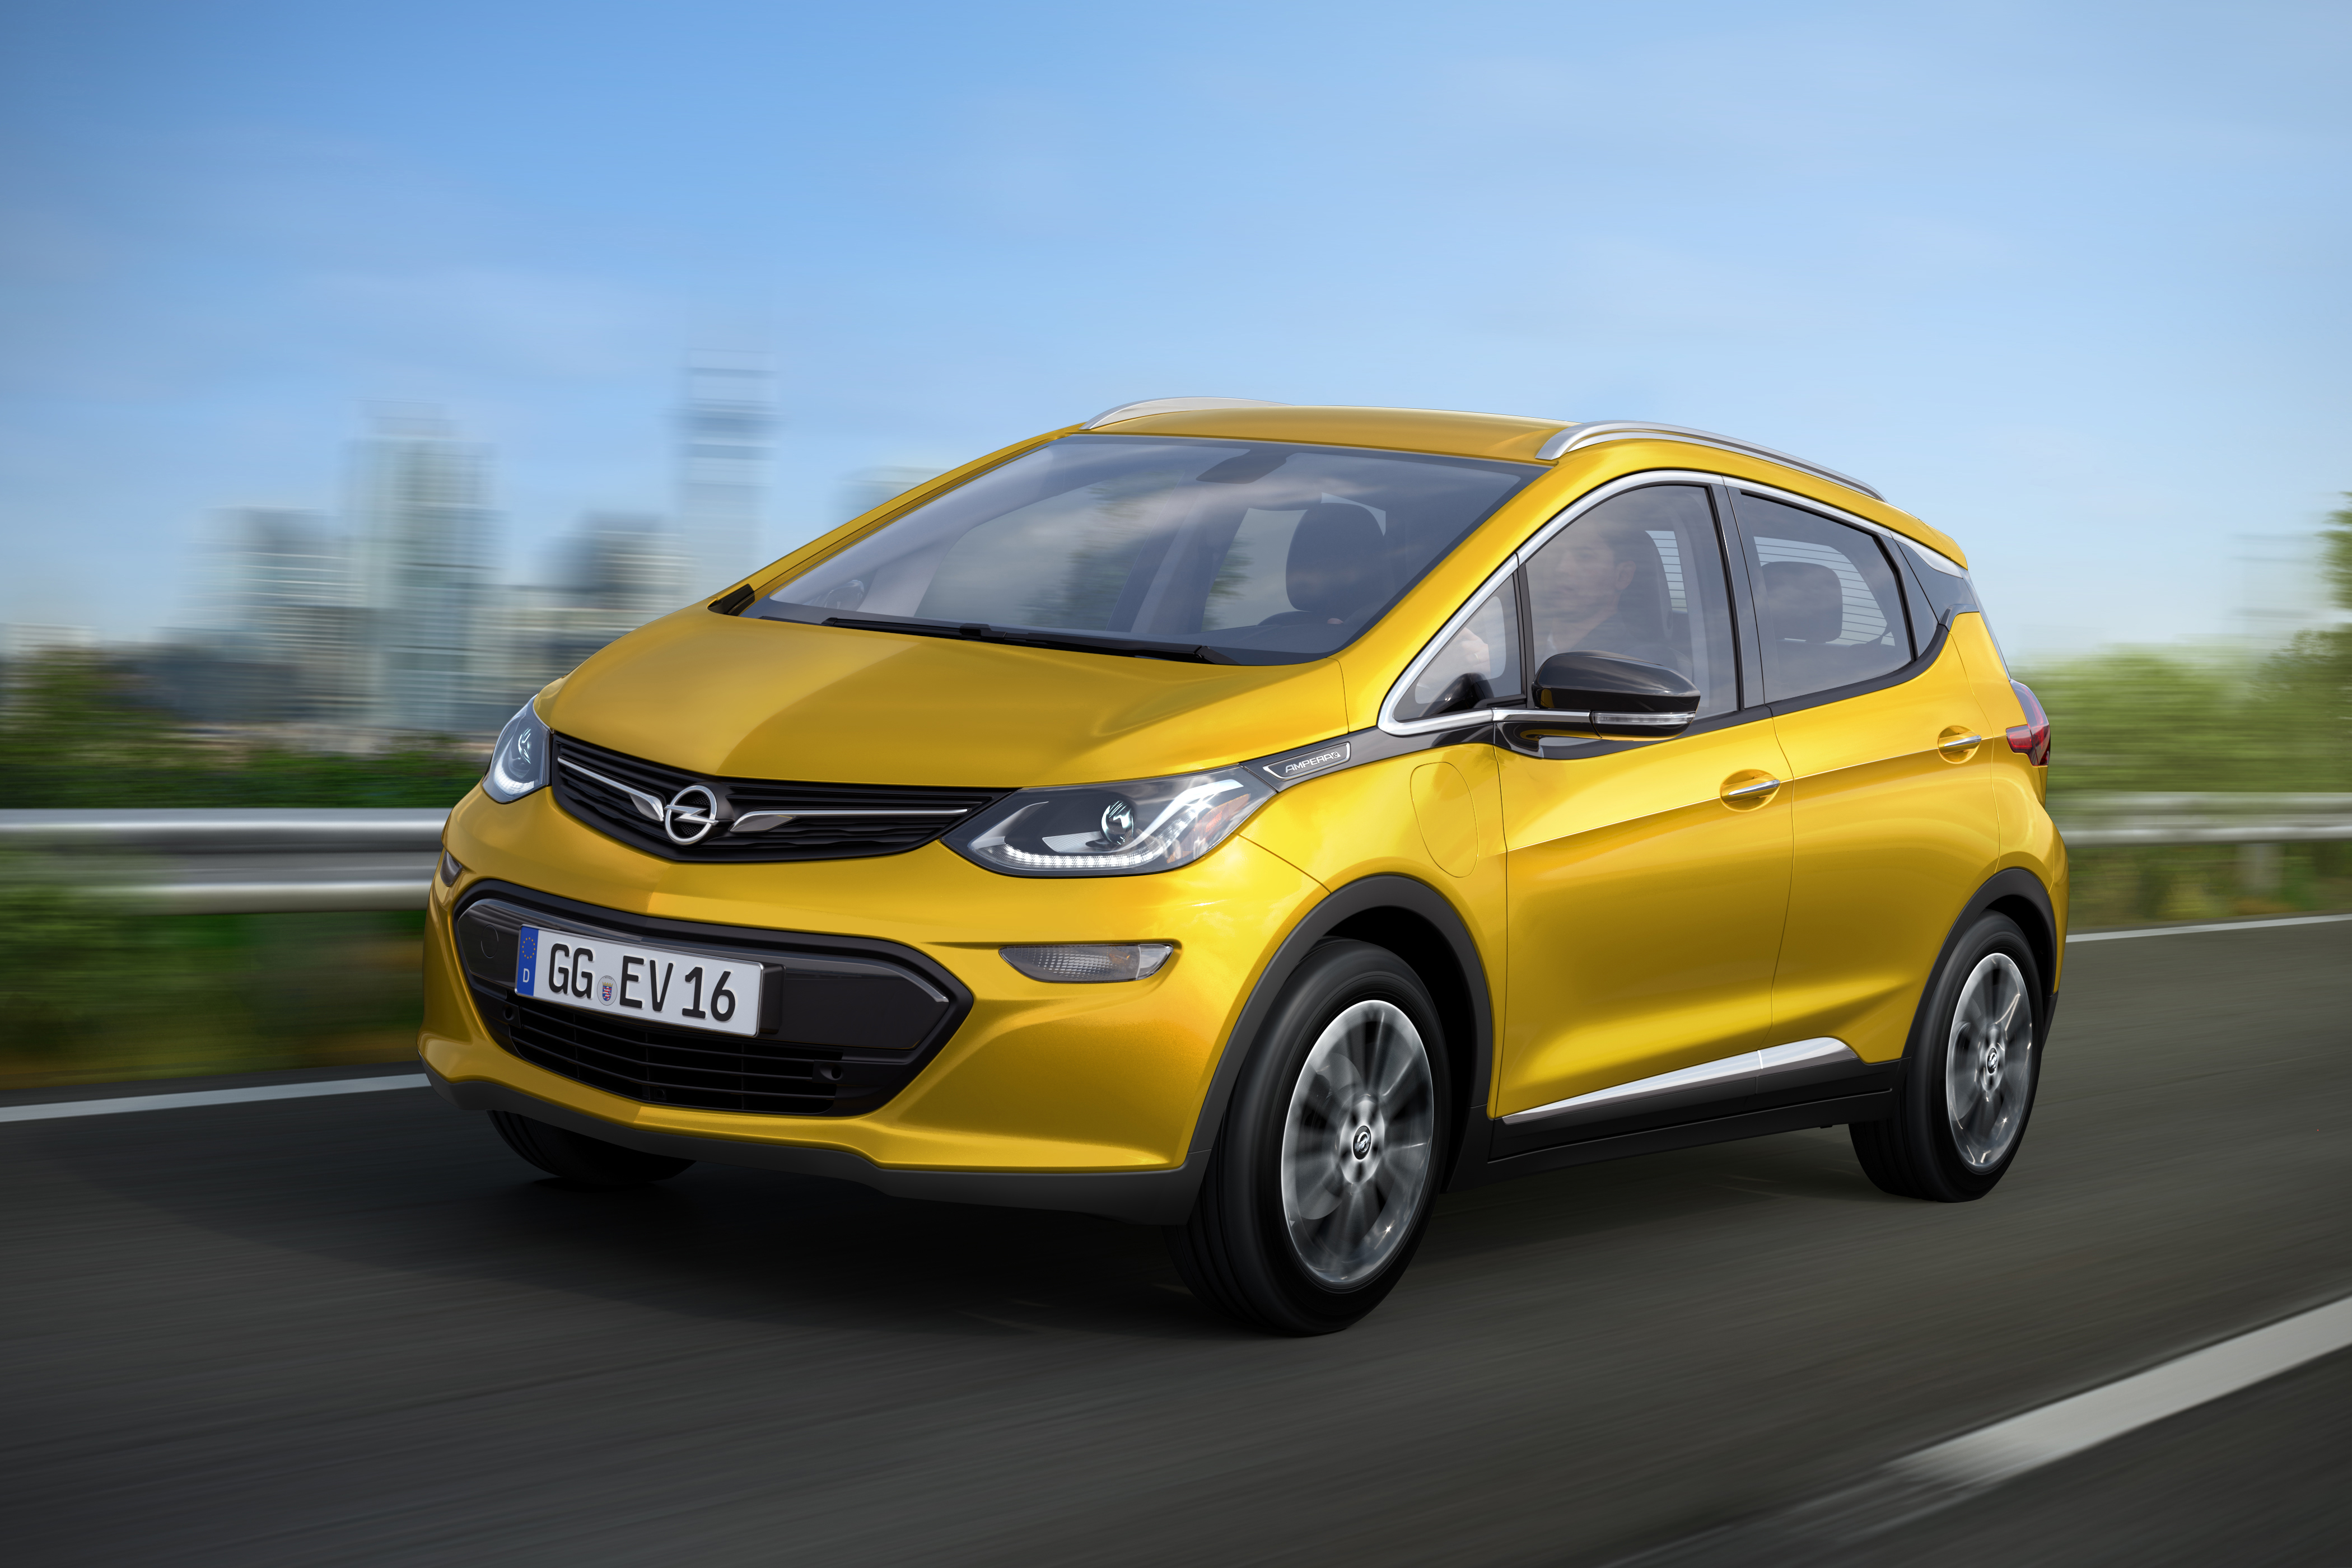 GM Chairman and CEO Mary Barra introduced the all-electric Opel Amepera-e,  Feb. 11 at the CAR Symposium in Germany.